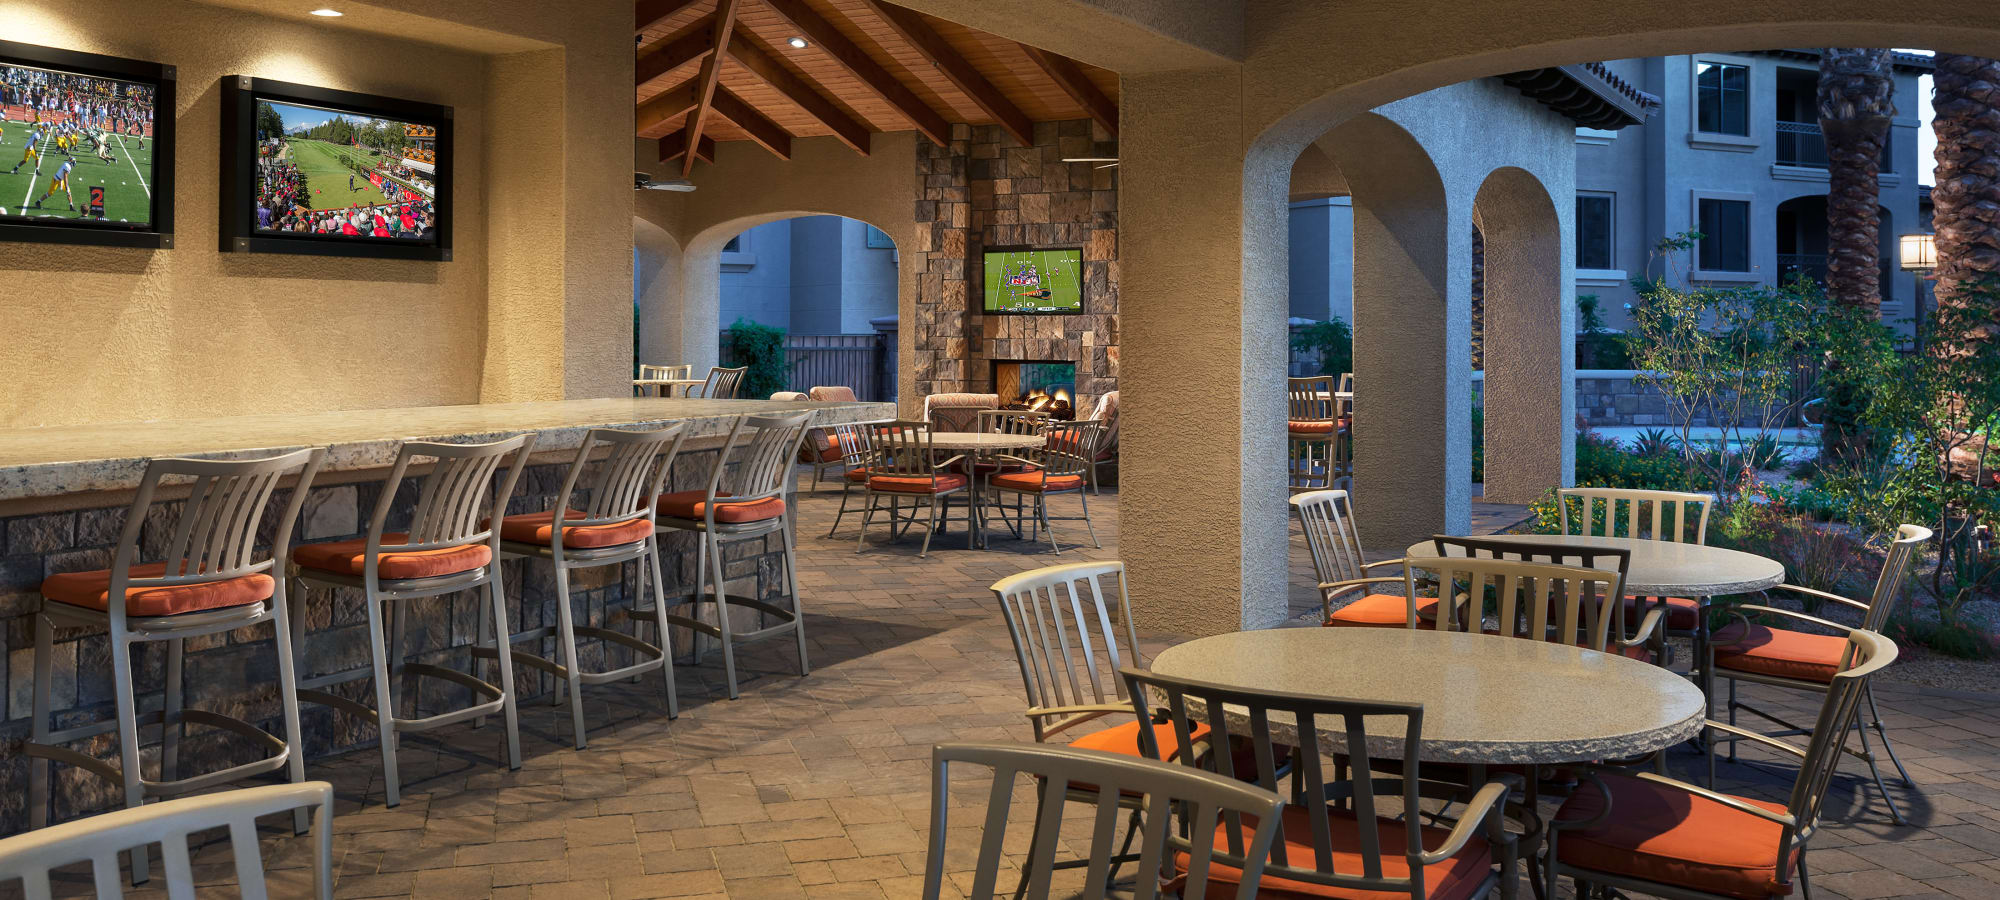 Poolside covered patio with a bar at San Portales in Scottsdale, Arizona